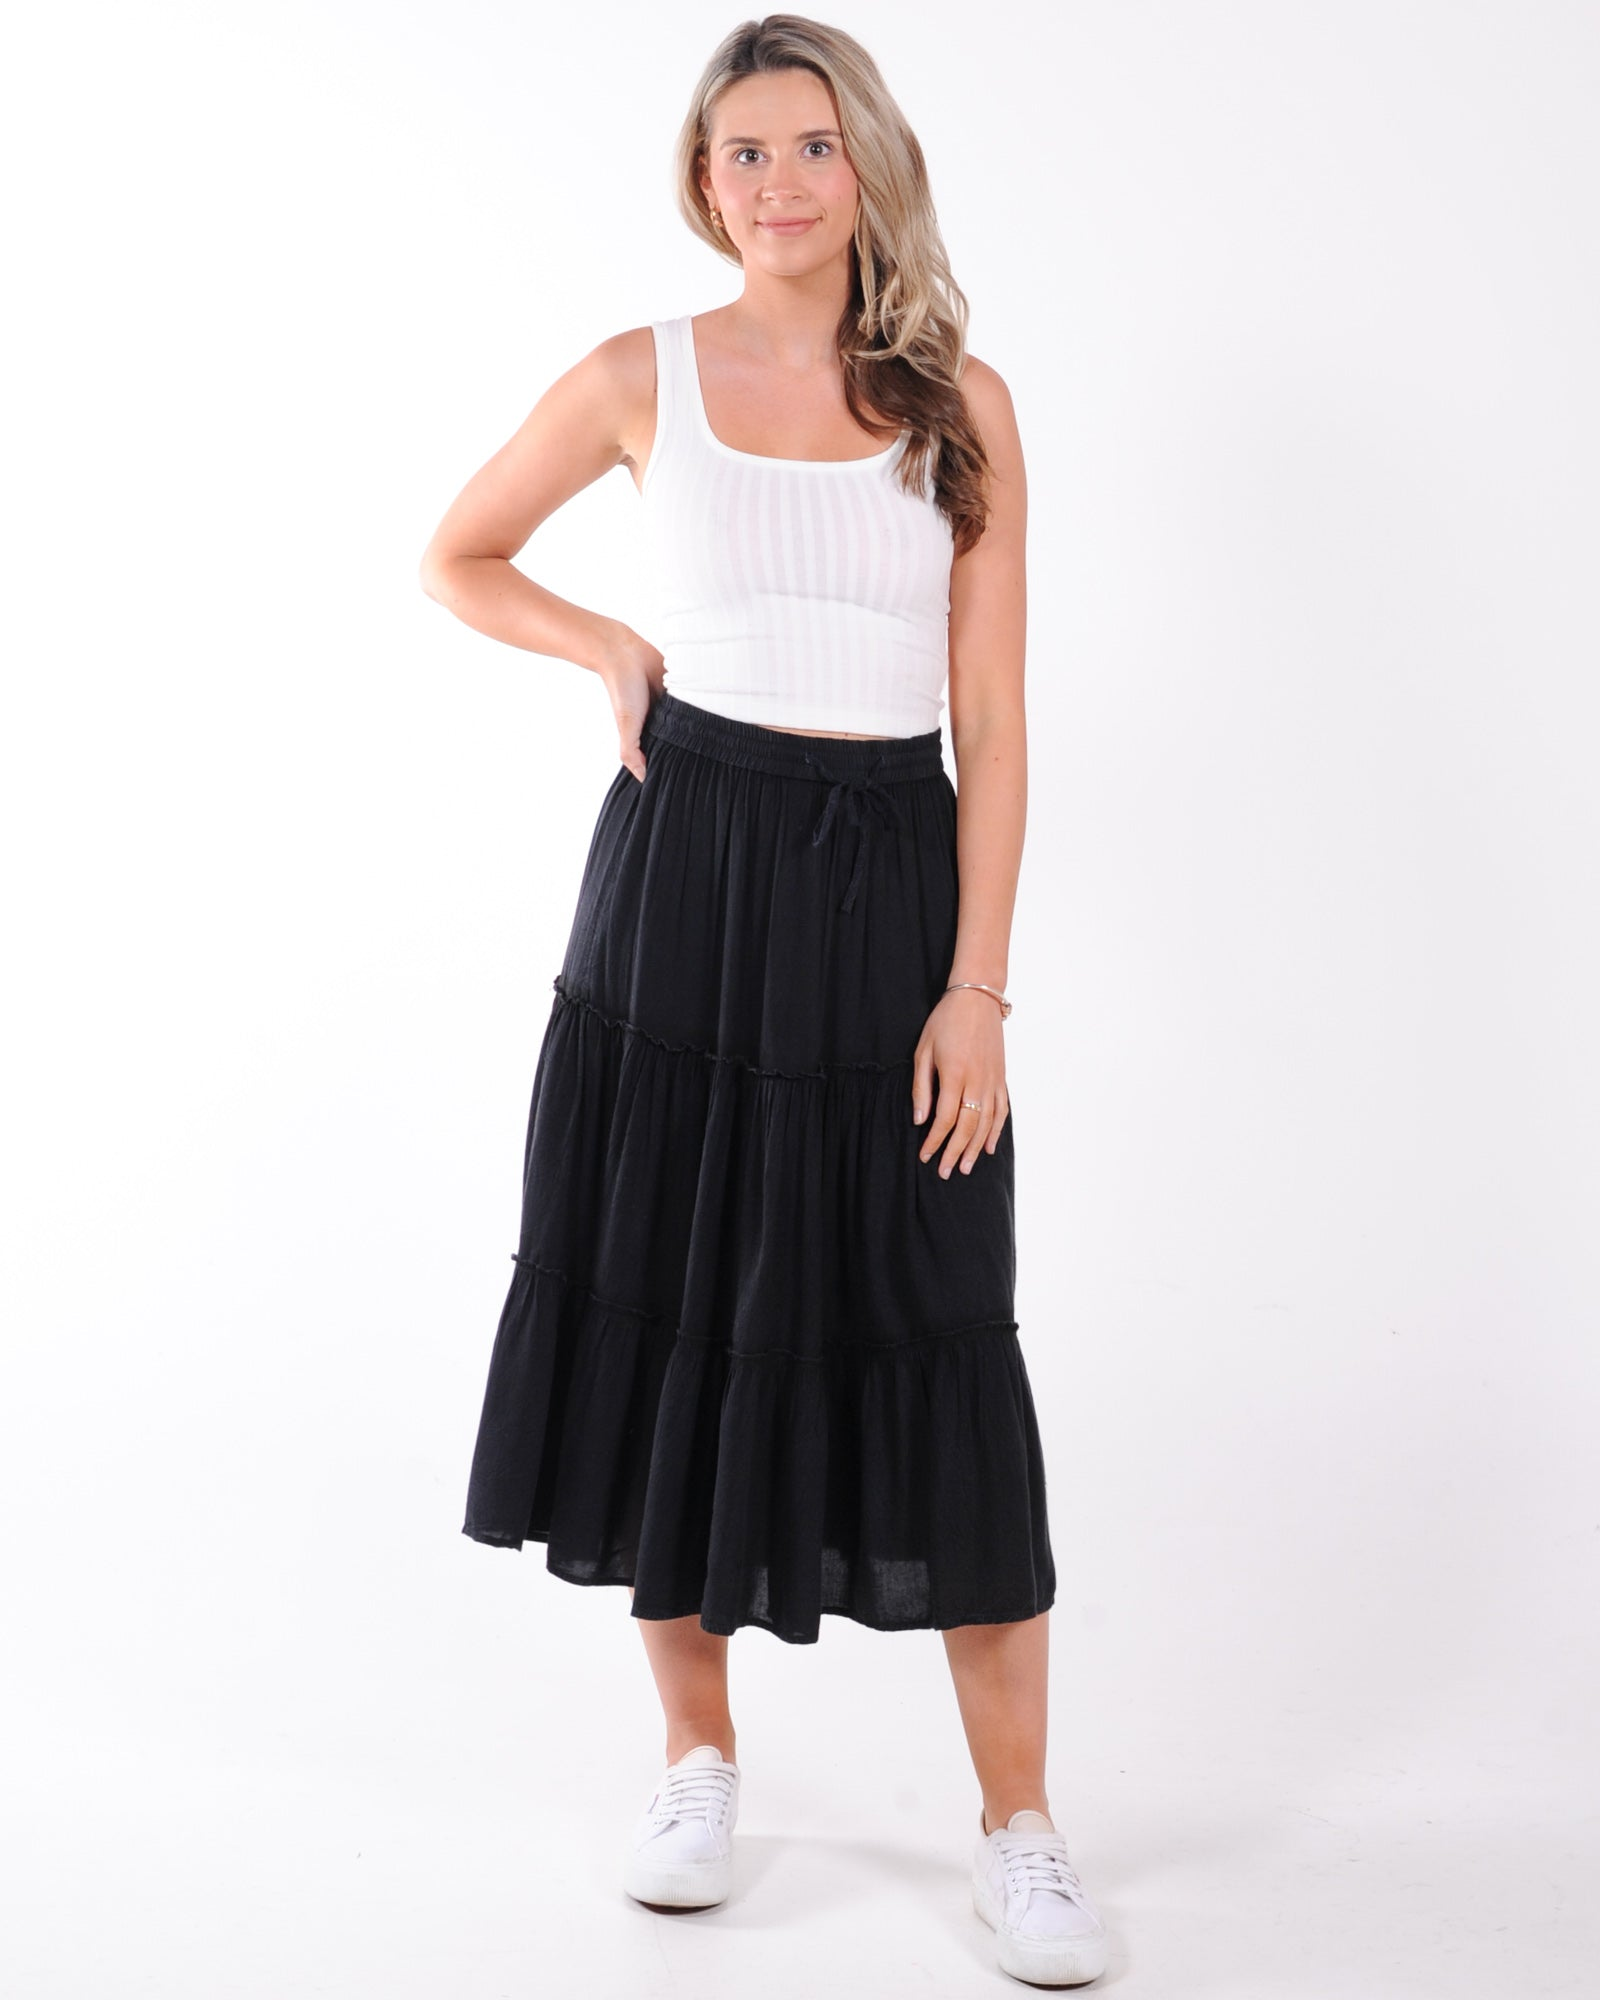 All About Eve Claudia Midi Tiered Skirt - Black